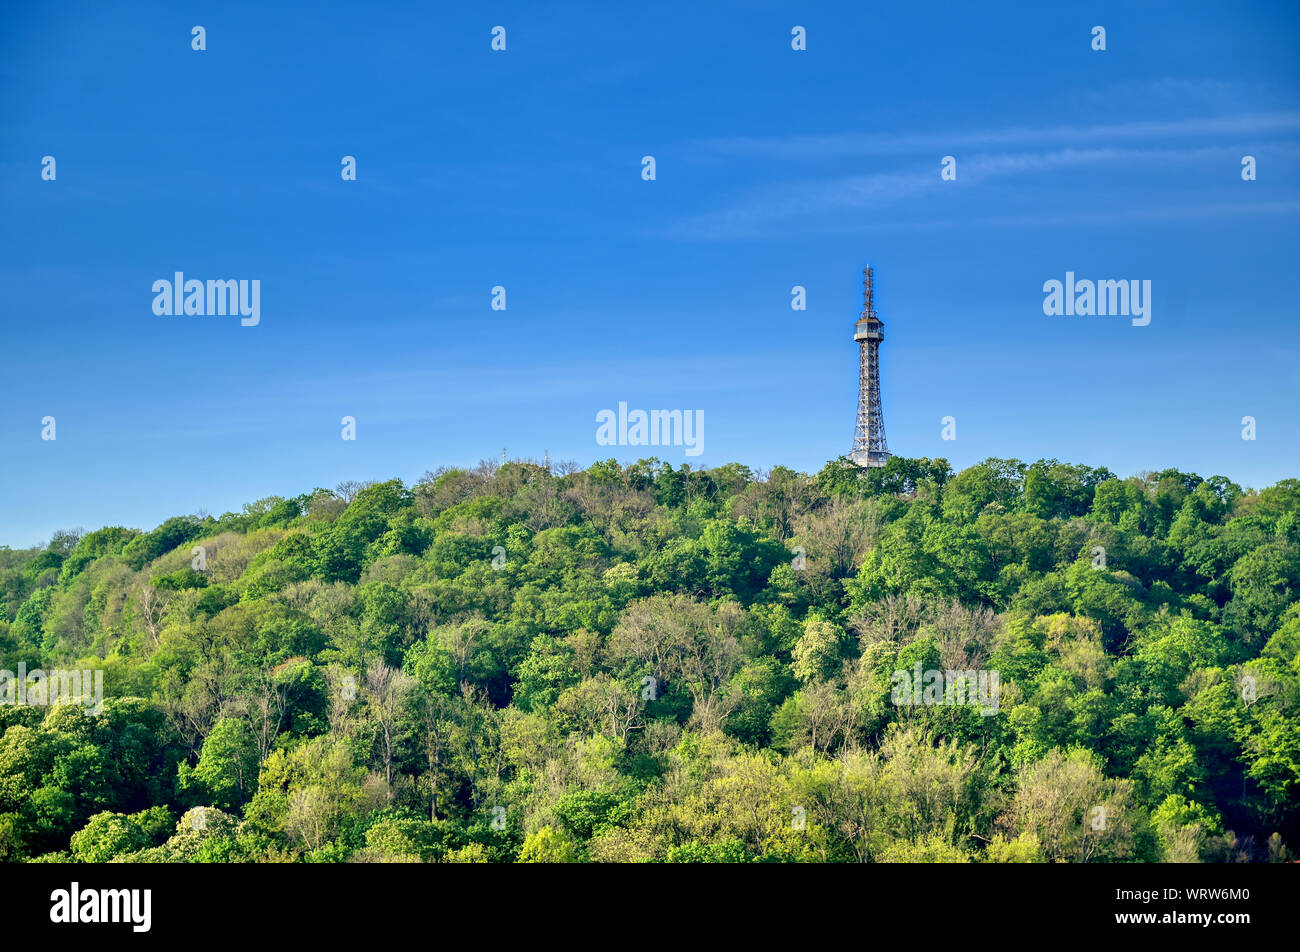 The Petrin Lookout Tower on Petrin Hill in Prague, Czech Republic. Stock Photo